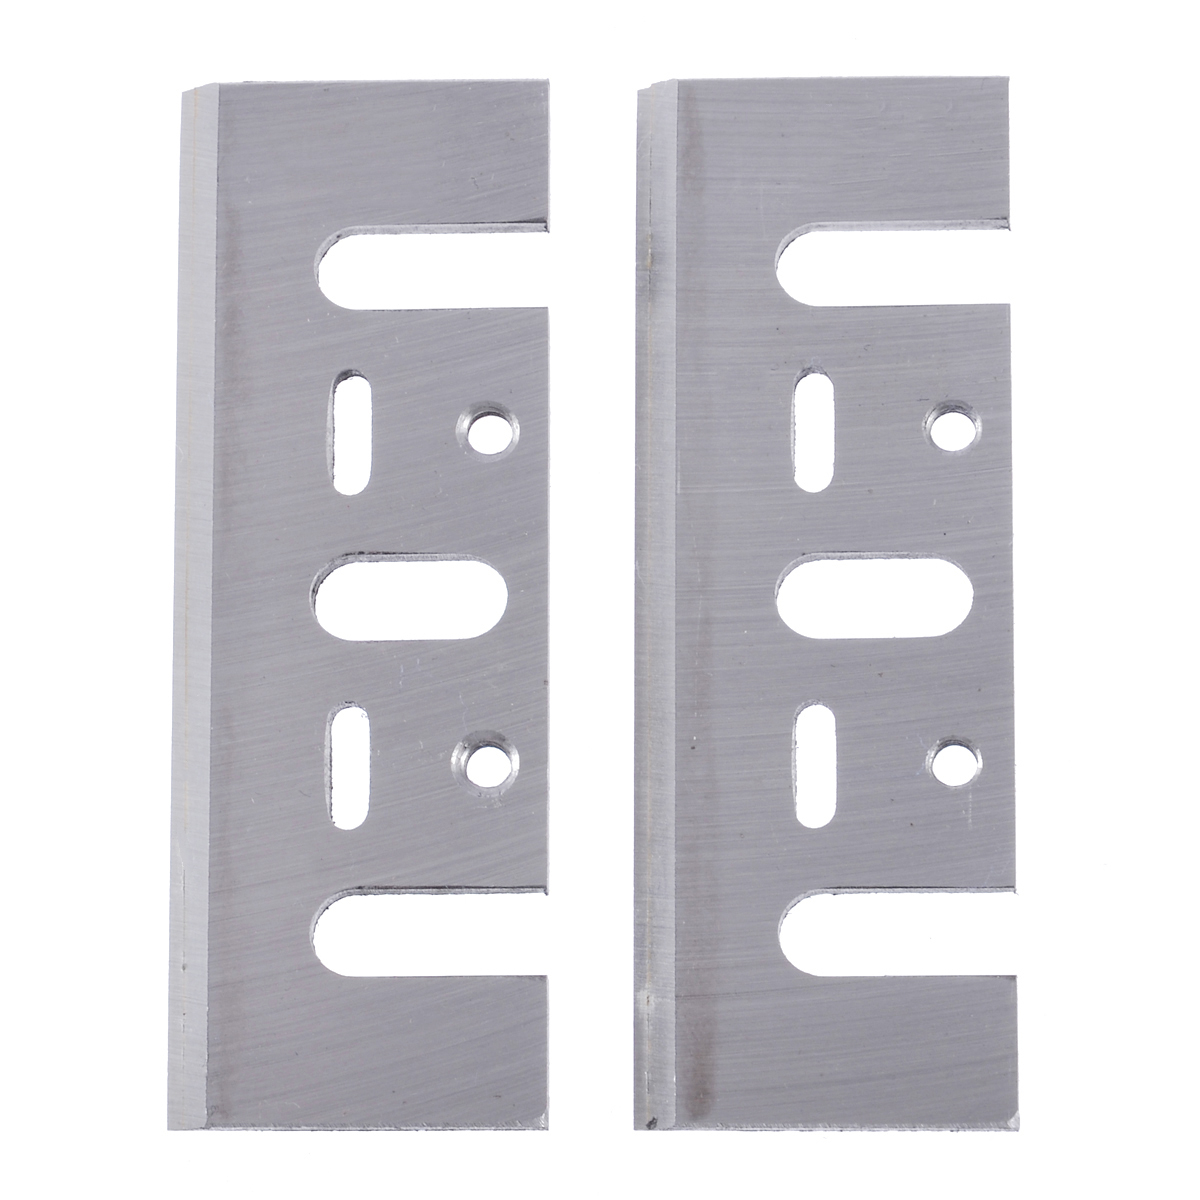 2pcs Electric Planer Blades Power Tool Part Replacement Fits Woodworking Planer Blades Power Tools Accessories Mayitr